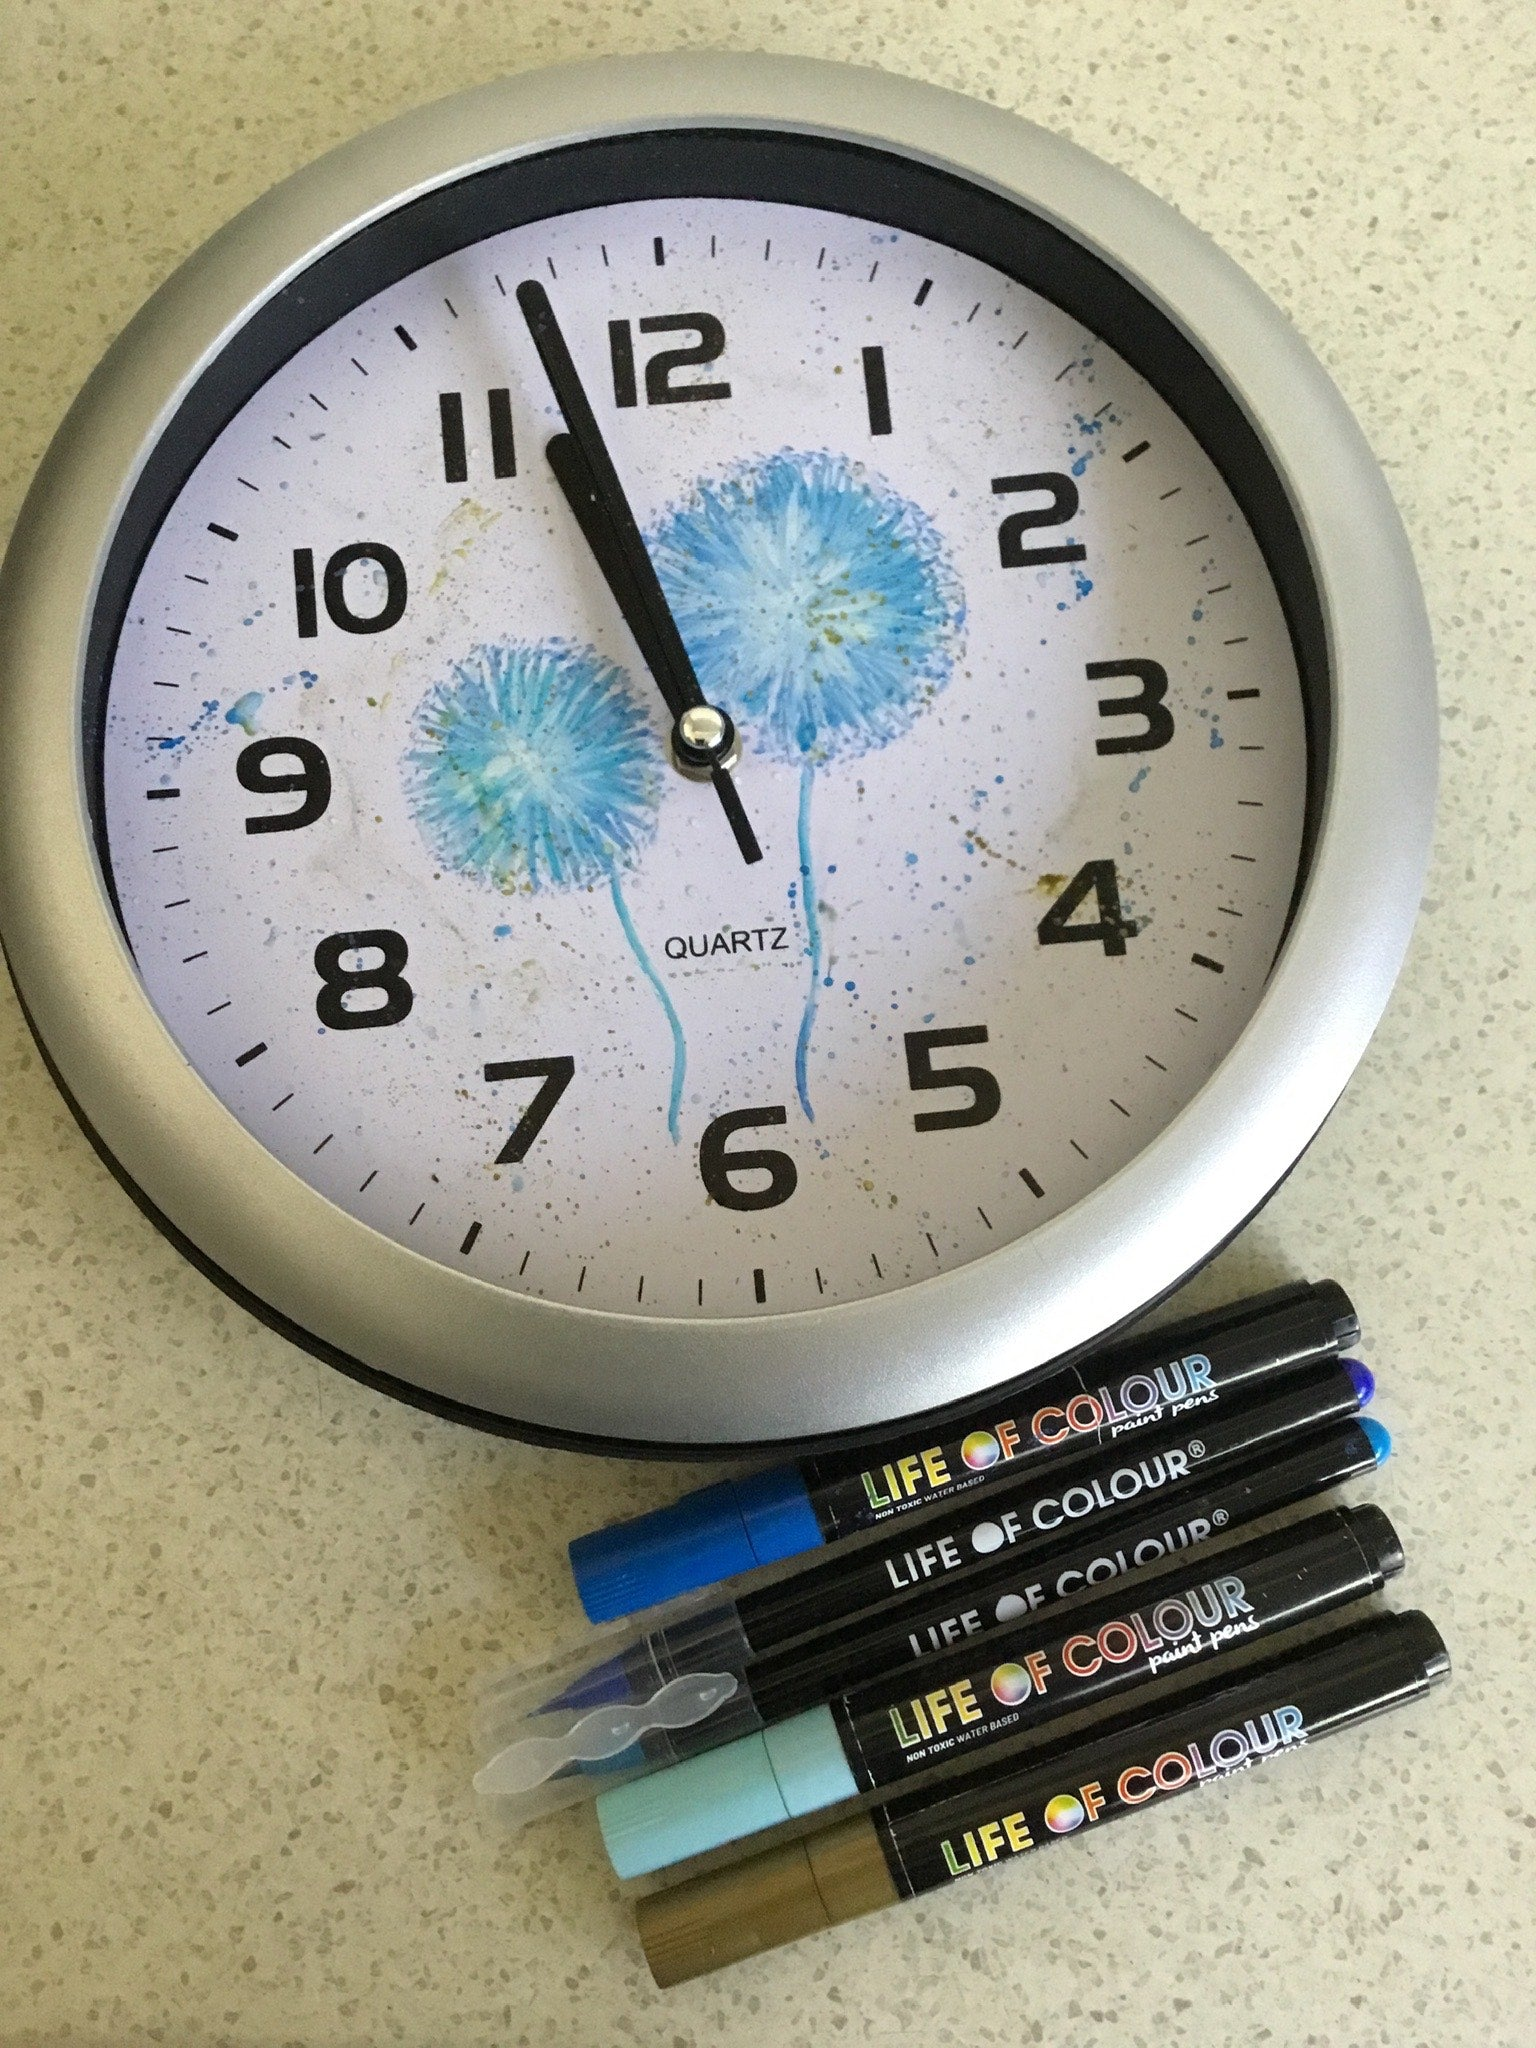 Clock makeover with dandelion seed puff 'make a wish' motif done in watercolour pens | Life of Colour